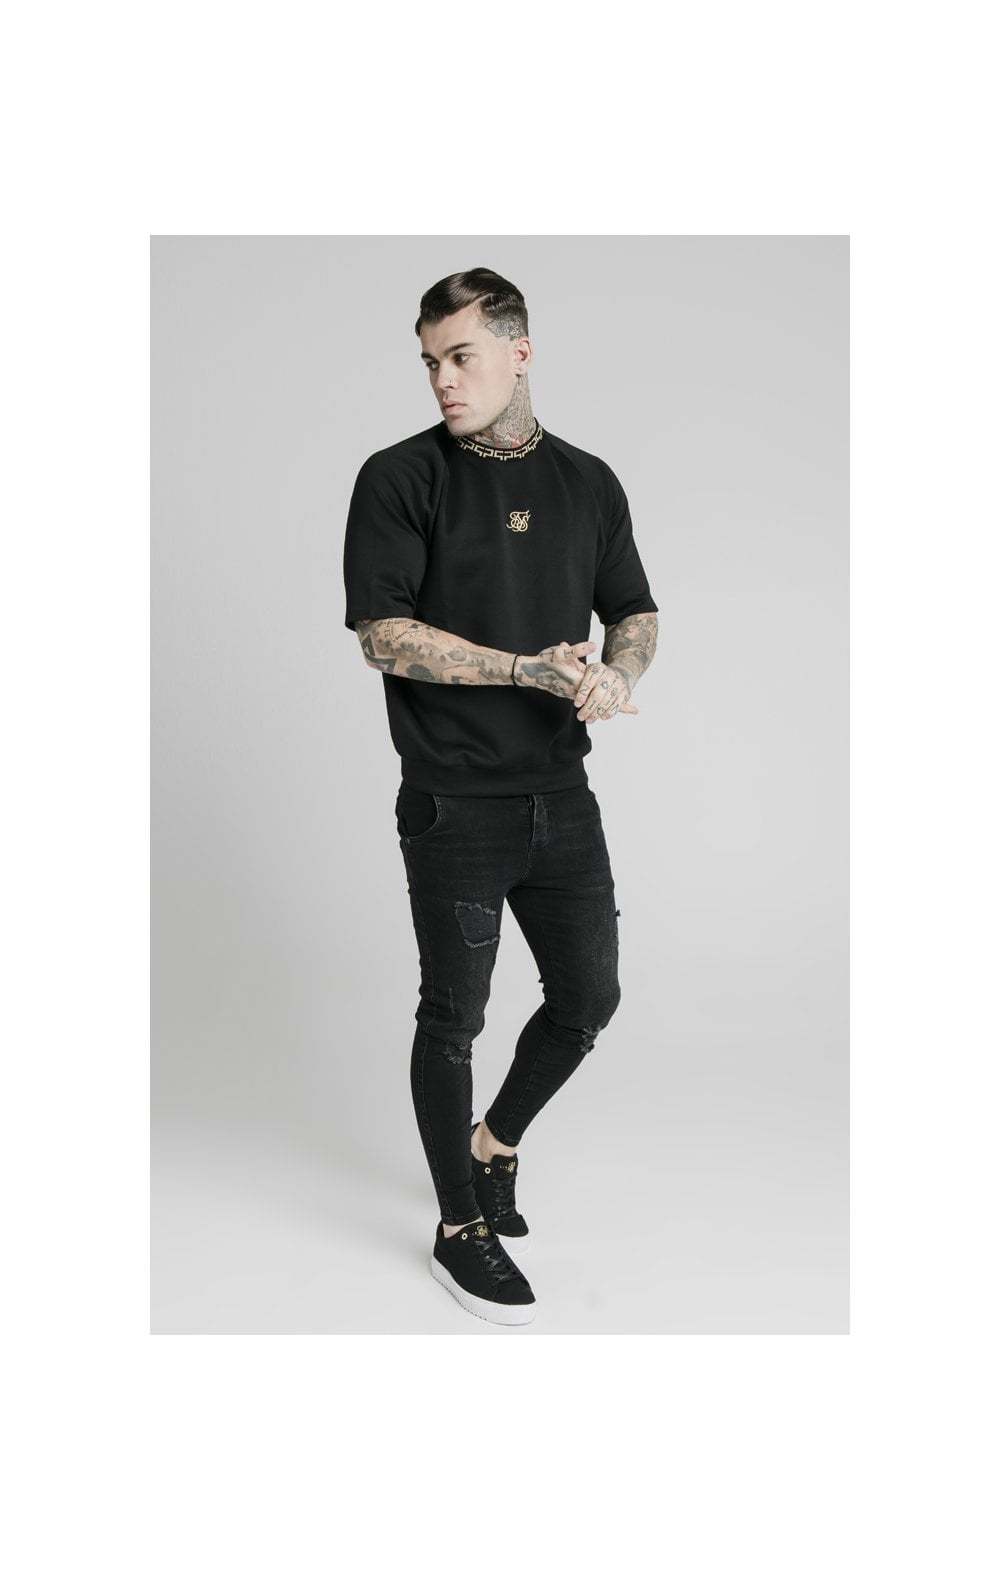 SikSilk S/S Chain Rib Raglan Sweater - Black (2)